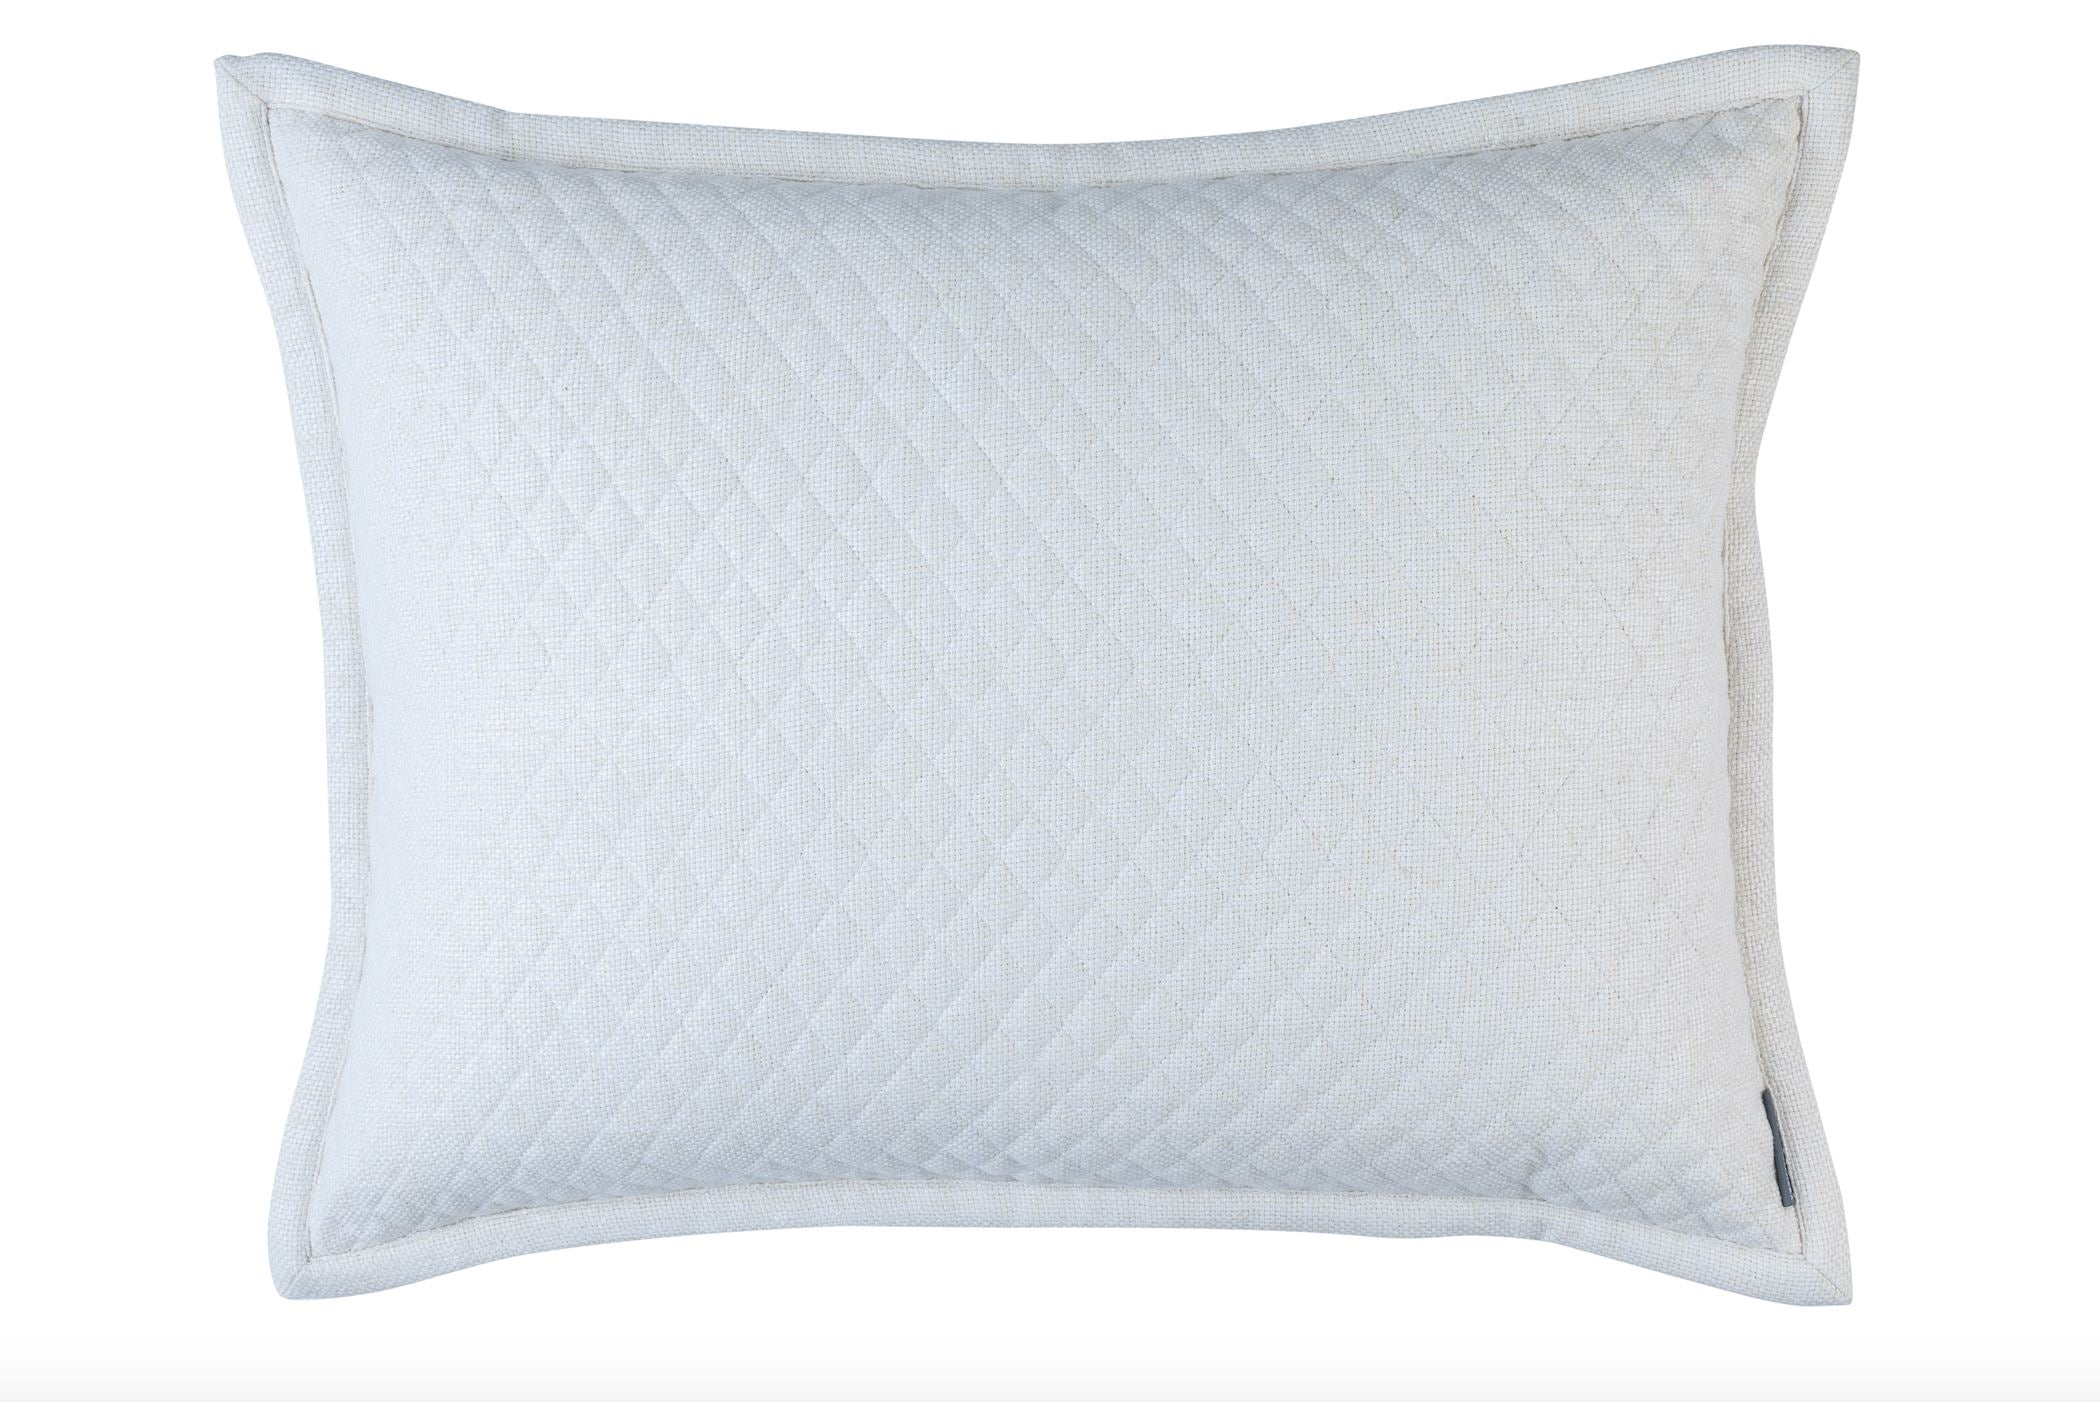 Lili Alessandra Laurie Quilted Ivory Basketweave Standard Pillow